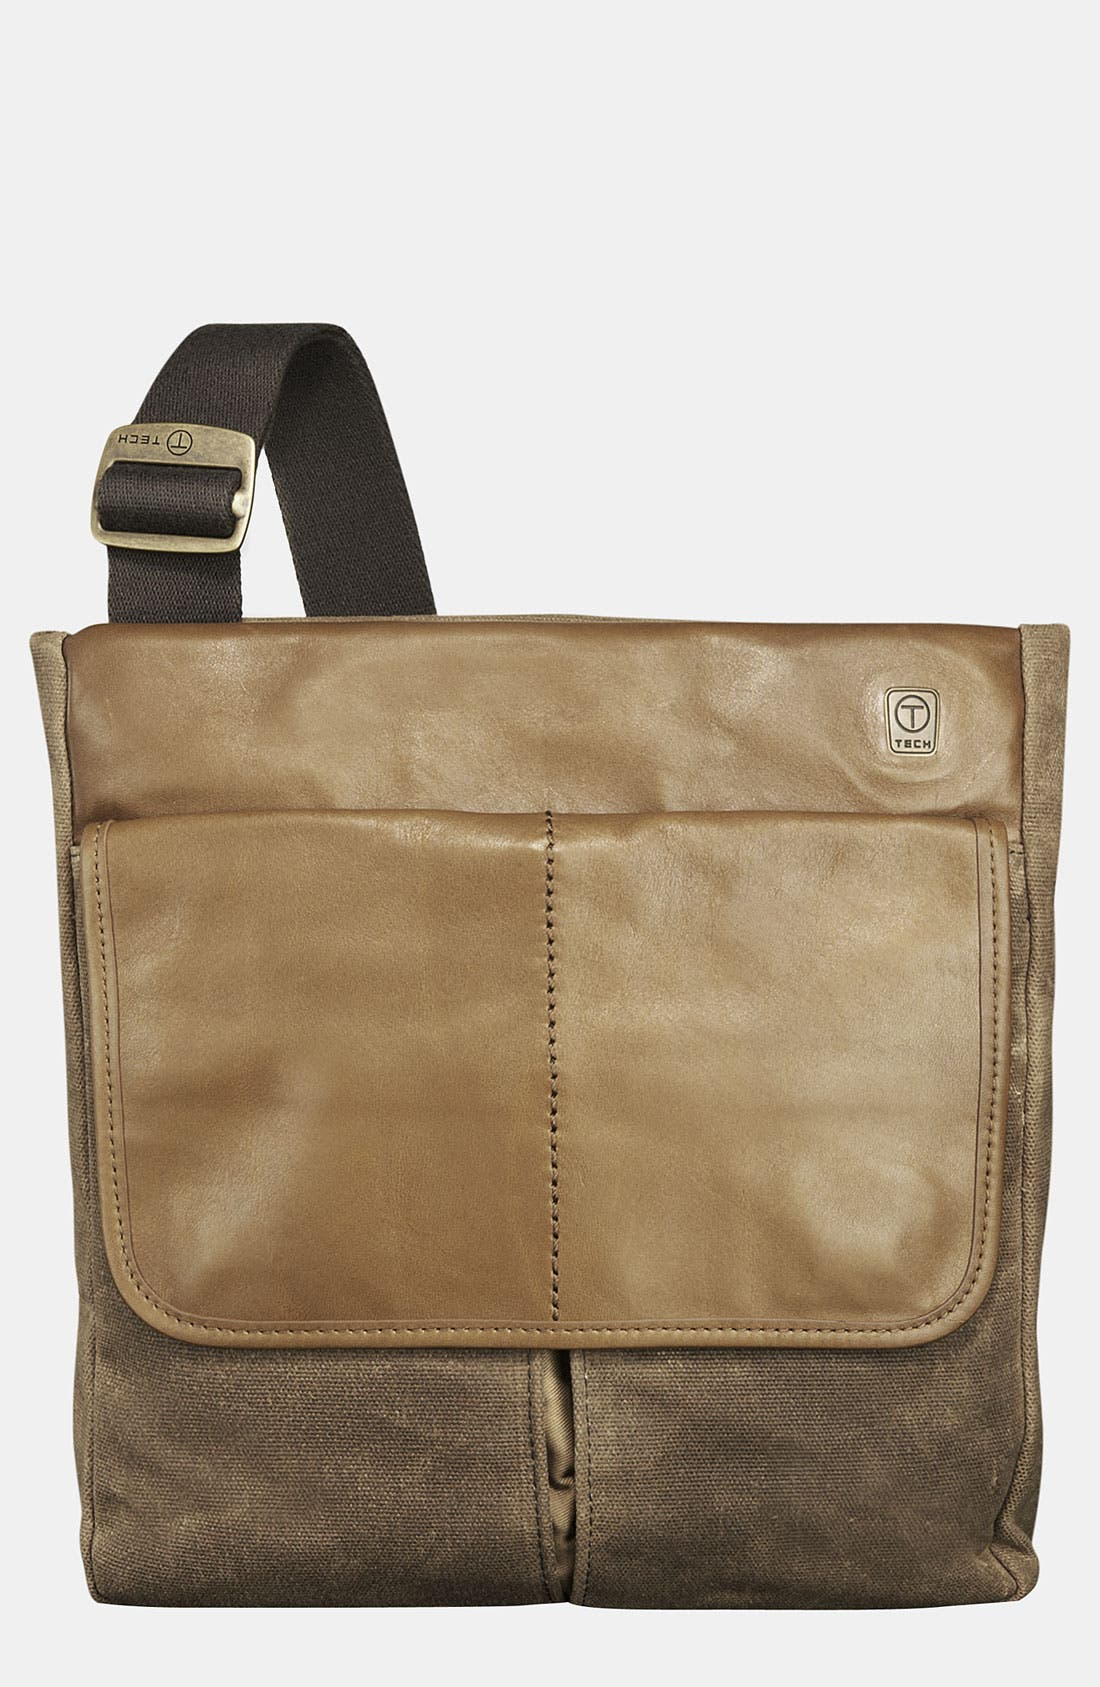 Main Image - T-Tech by Tumi 'Forge - Pueblo' Top Zip Flap Bag